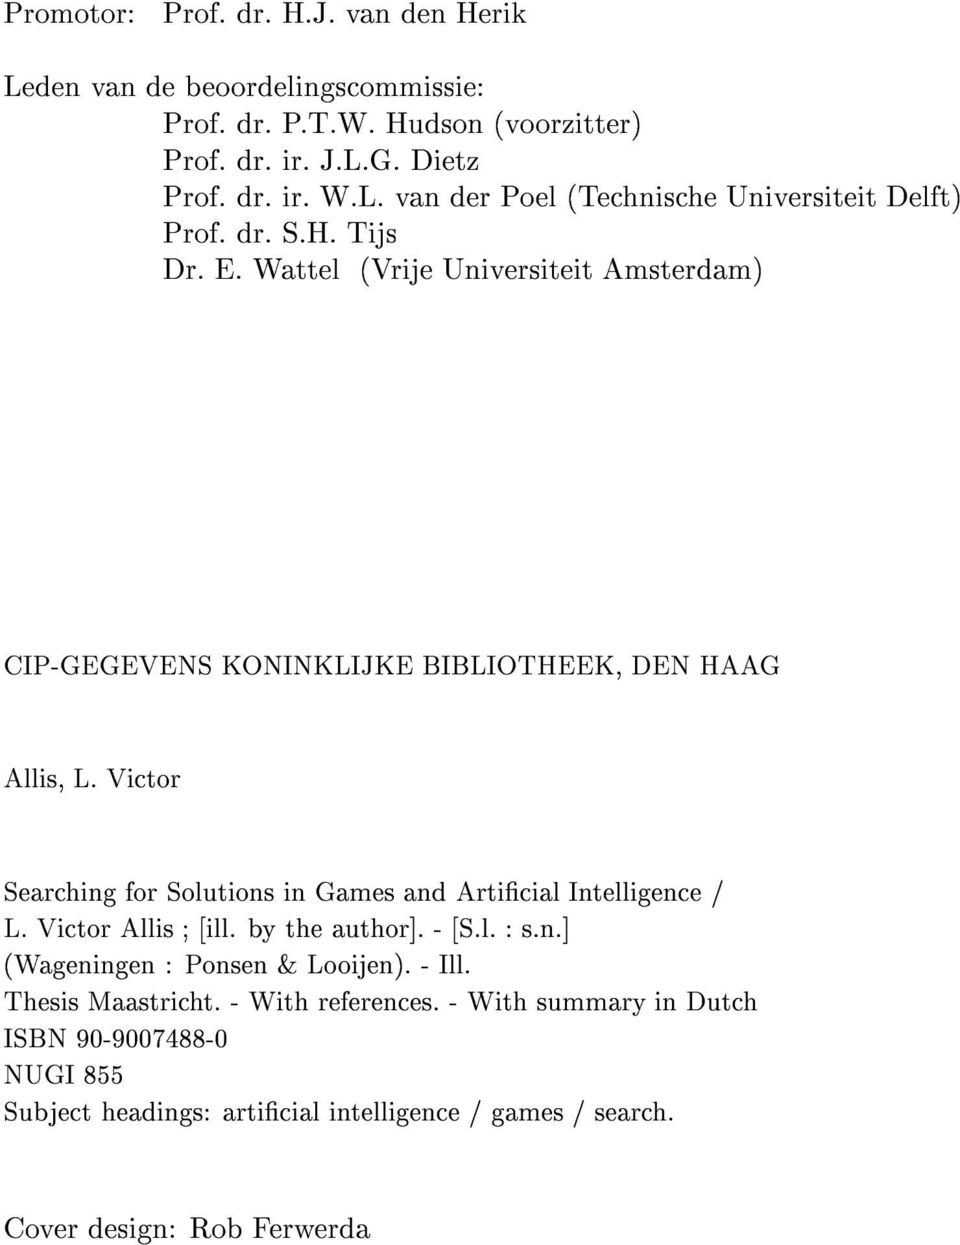 Victor Searching for Solutions in Games and Articial Intelligence / L. Victor Allis [ill. by the author]. - [S.l. : s.n.] (Wageningen : Ponsen & Looijen). - Ill.